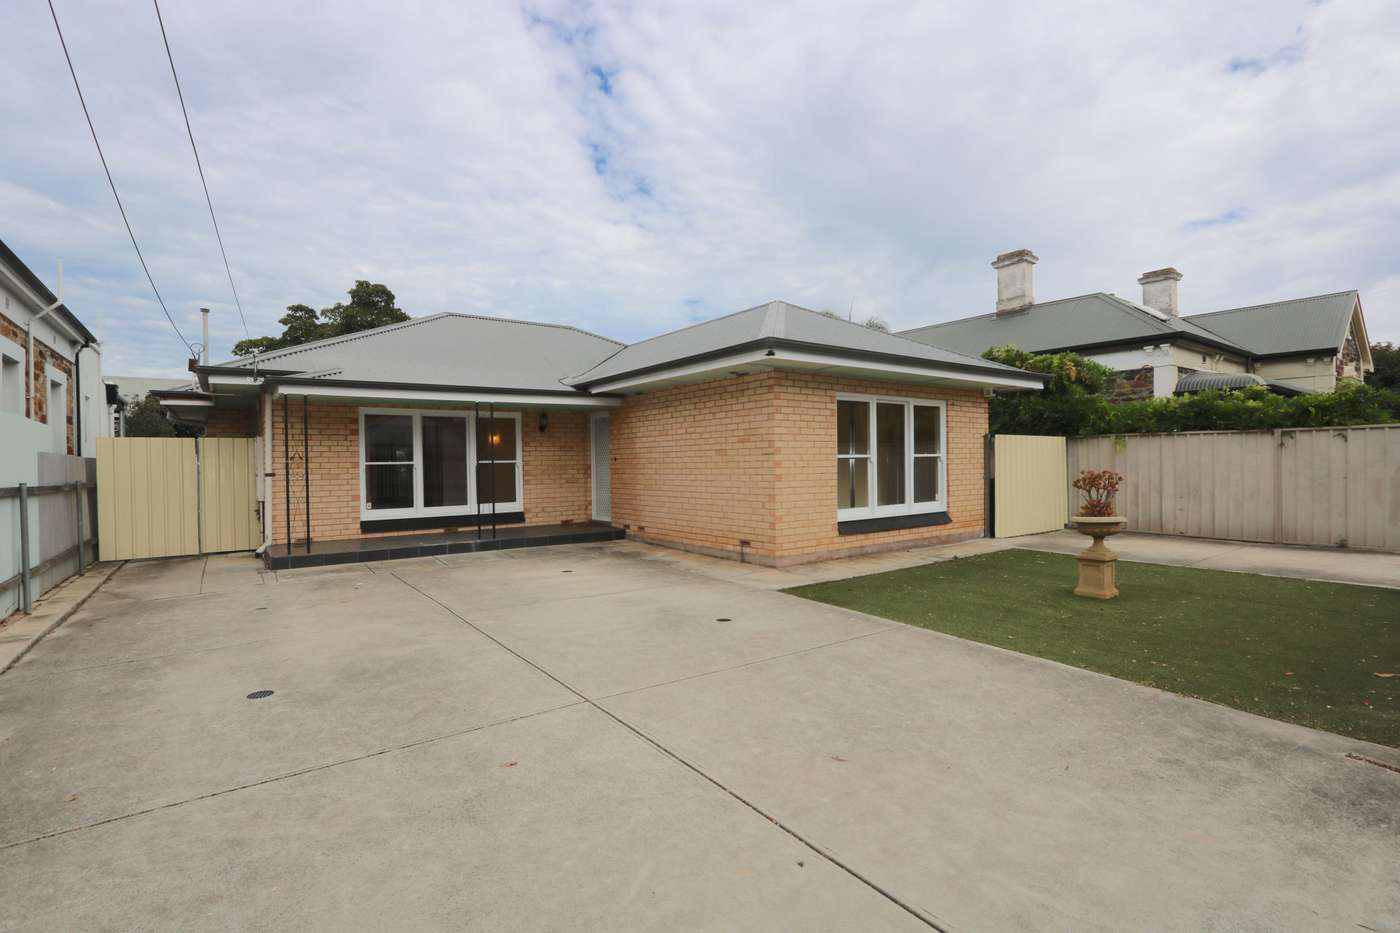 Main view of Homely house listing, 190 King William Road, Hyde Park, SA 5061